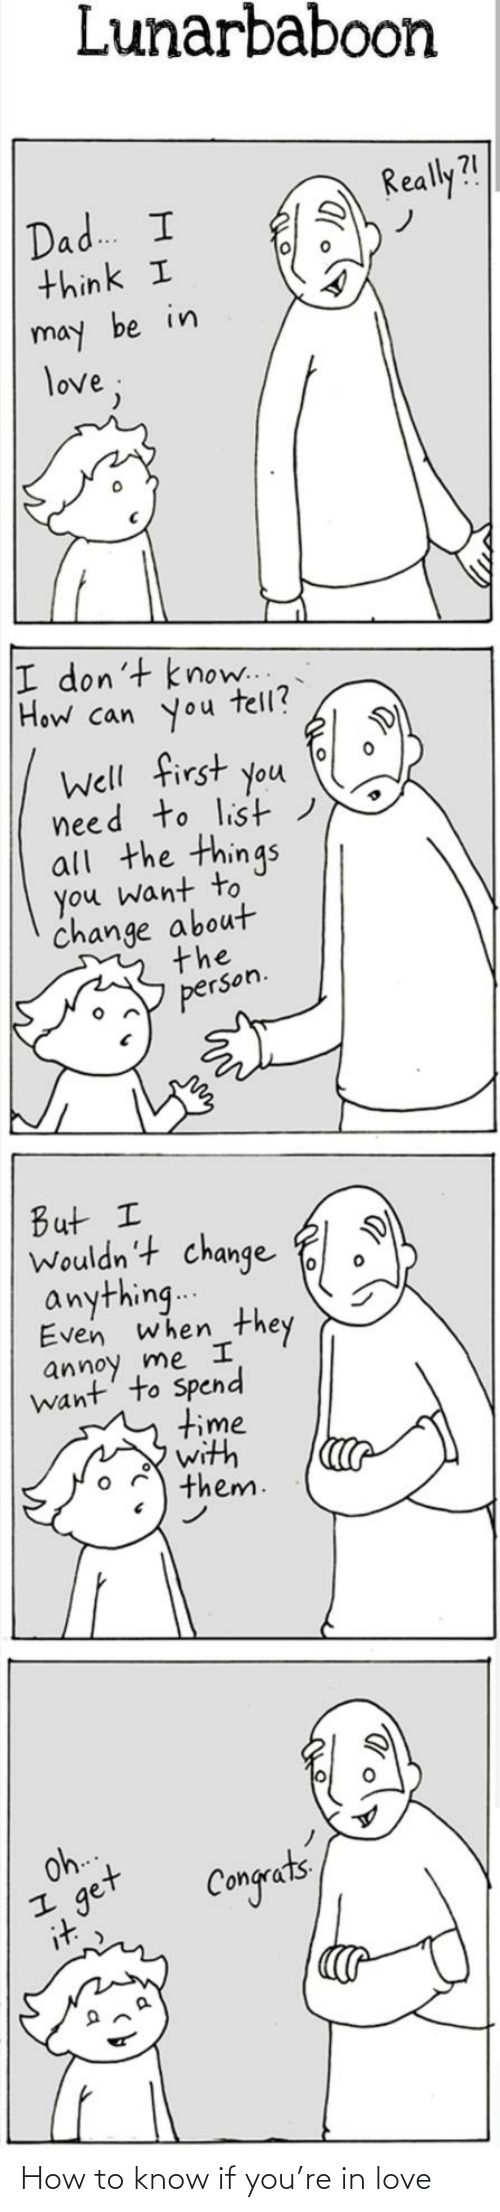 Wouldnt: Lunarbaboon  Really?!  Dad. I  think I  may be in  love;  I don't know..  How can you  tell?  Well first you  need to list)  all the things  you want to  change about  the  person.  But I  Wouldn't change  anything..  Even when  they  annoy me I  want' to Spend  time  with  them.  Oh.  get  it  Congets How to know if you're in love